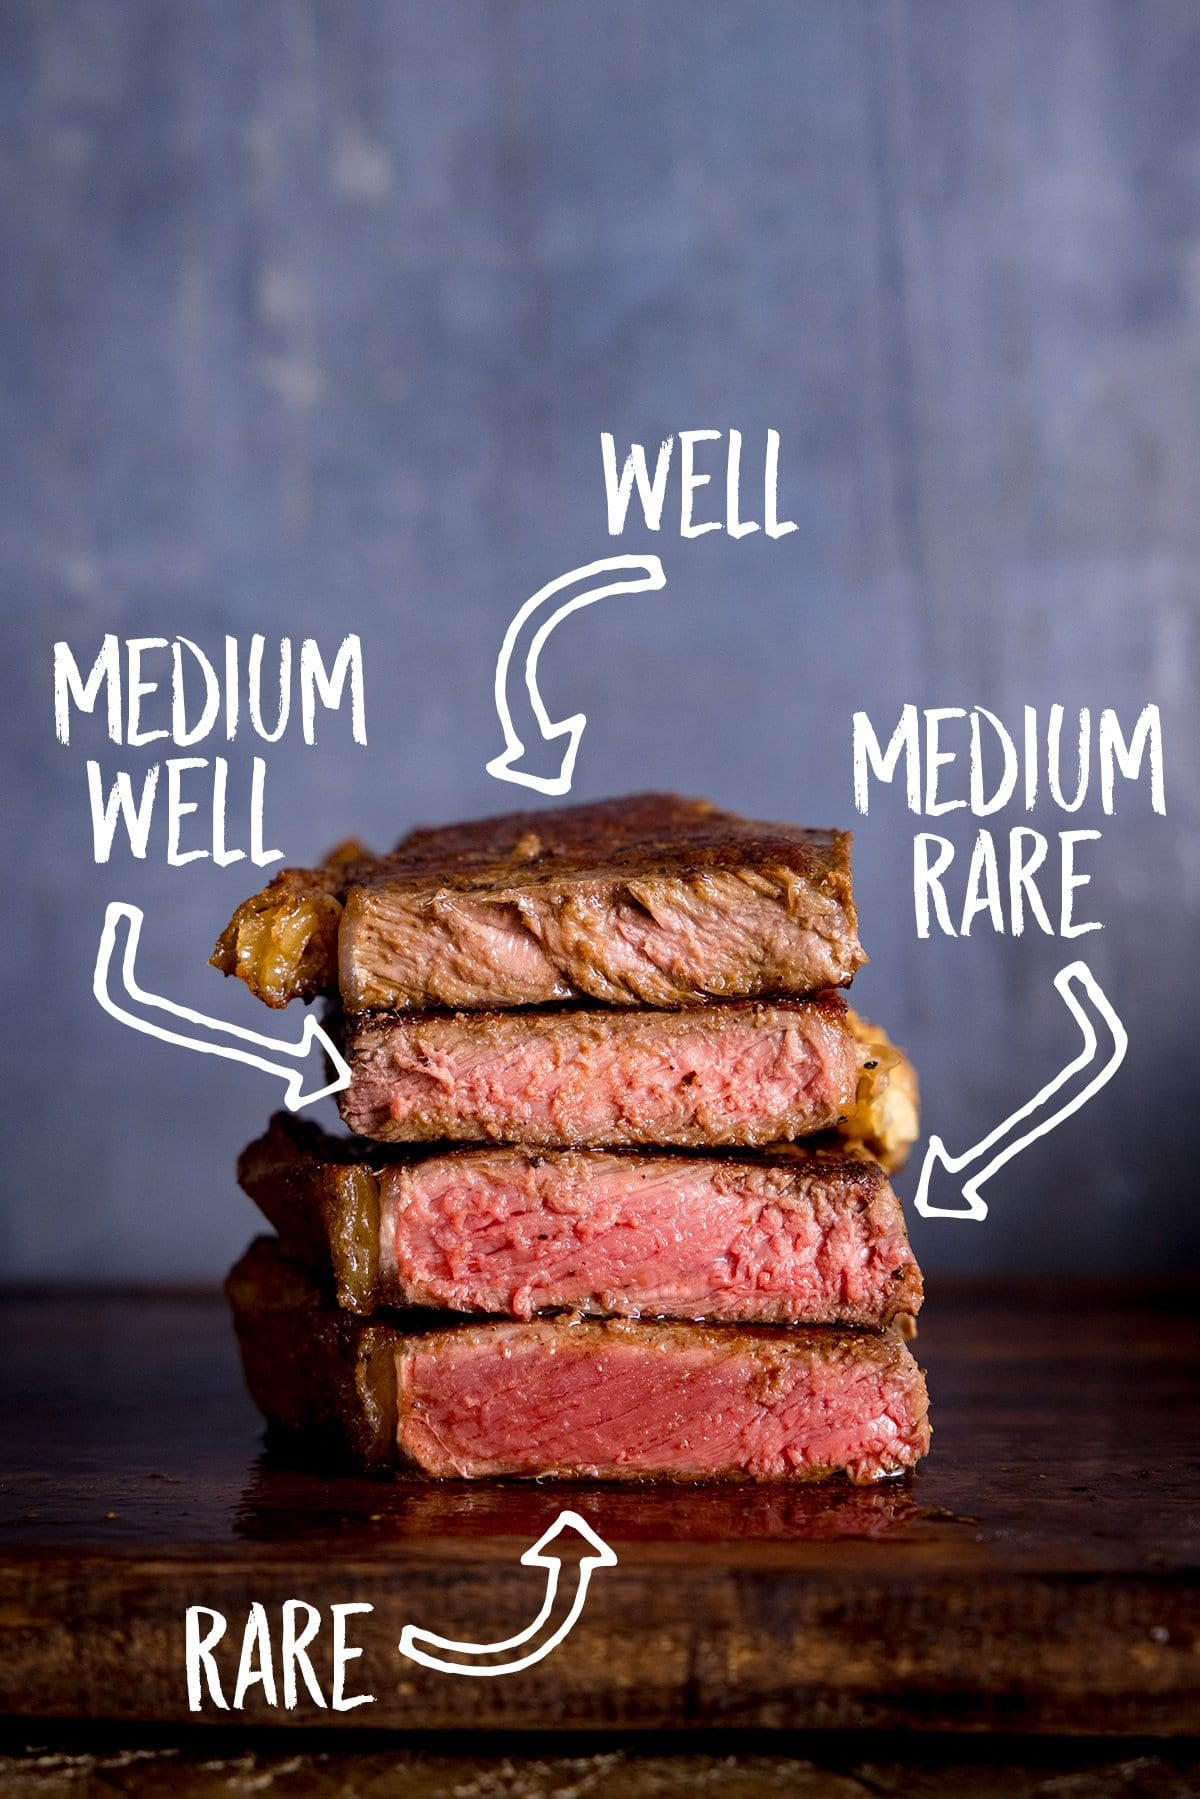 Four steaks on a wooden board, sliced open and piled on top of each other to show varying amounts of doneness. There is a label for each doneness level.